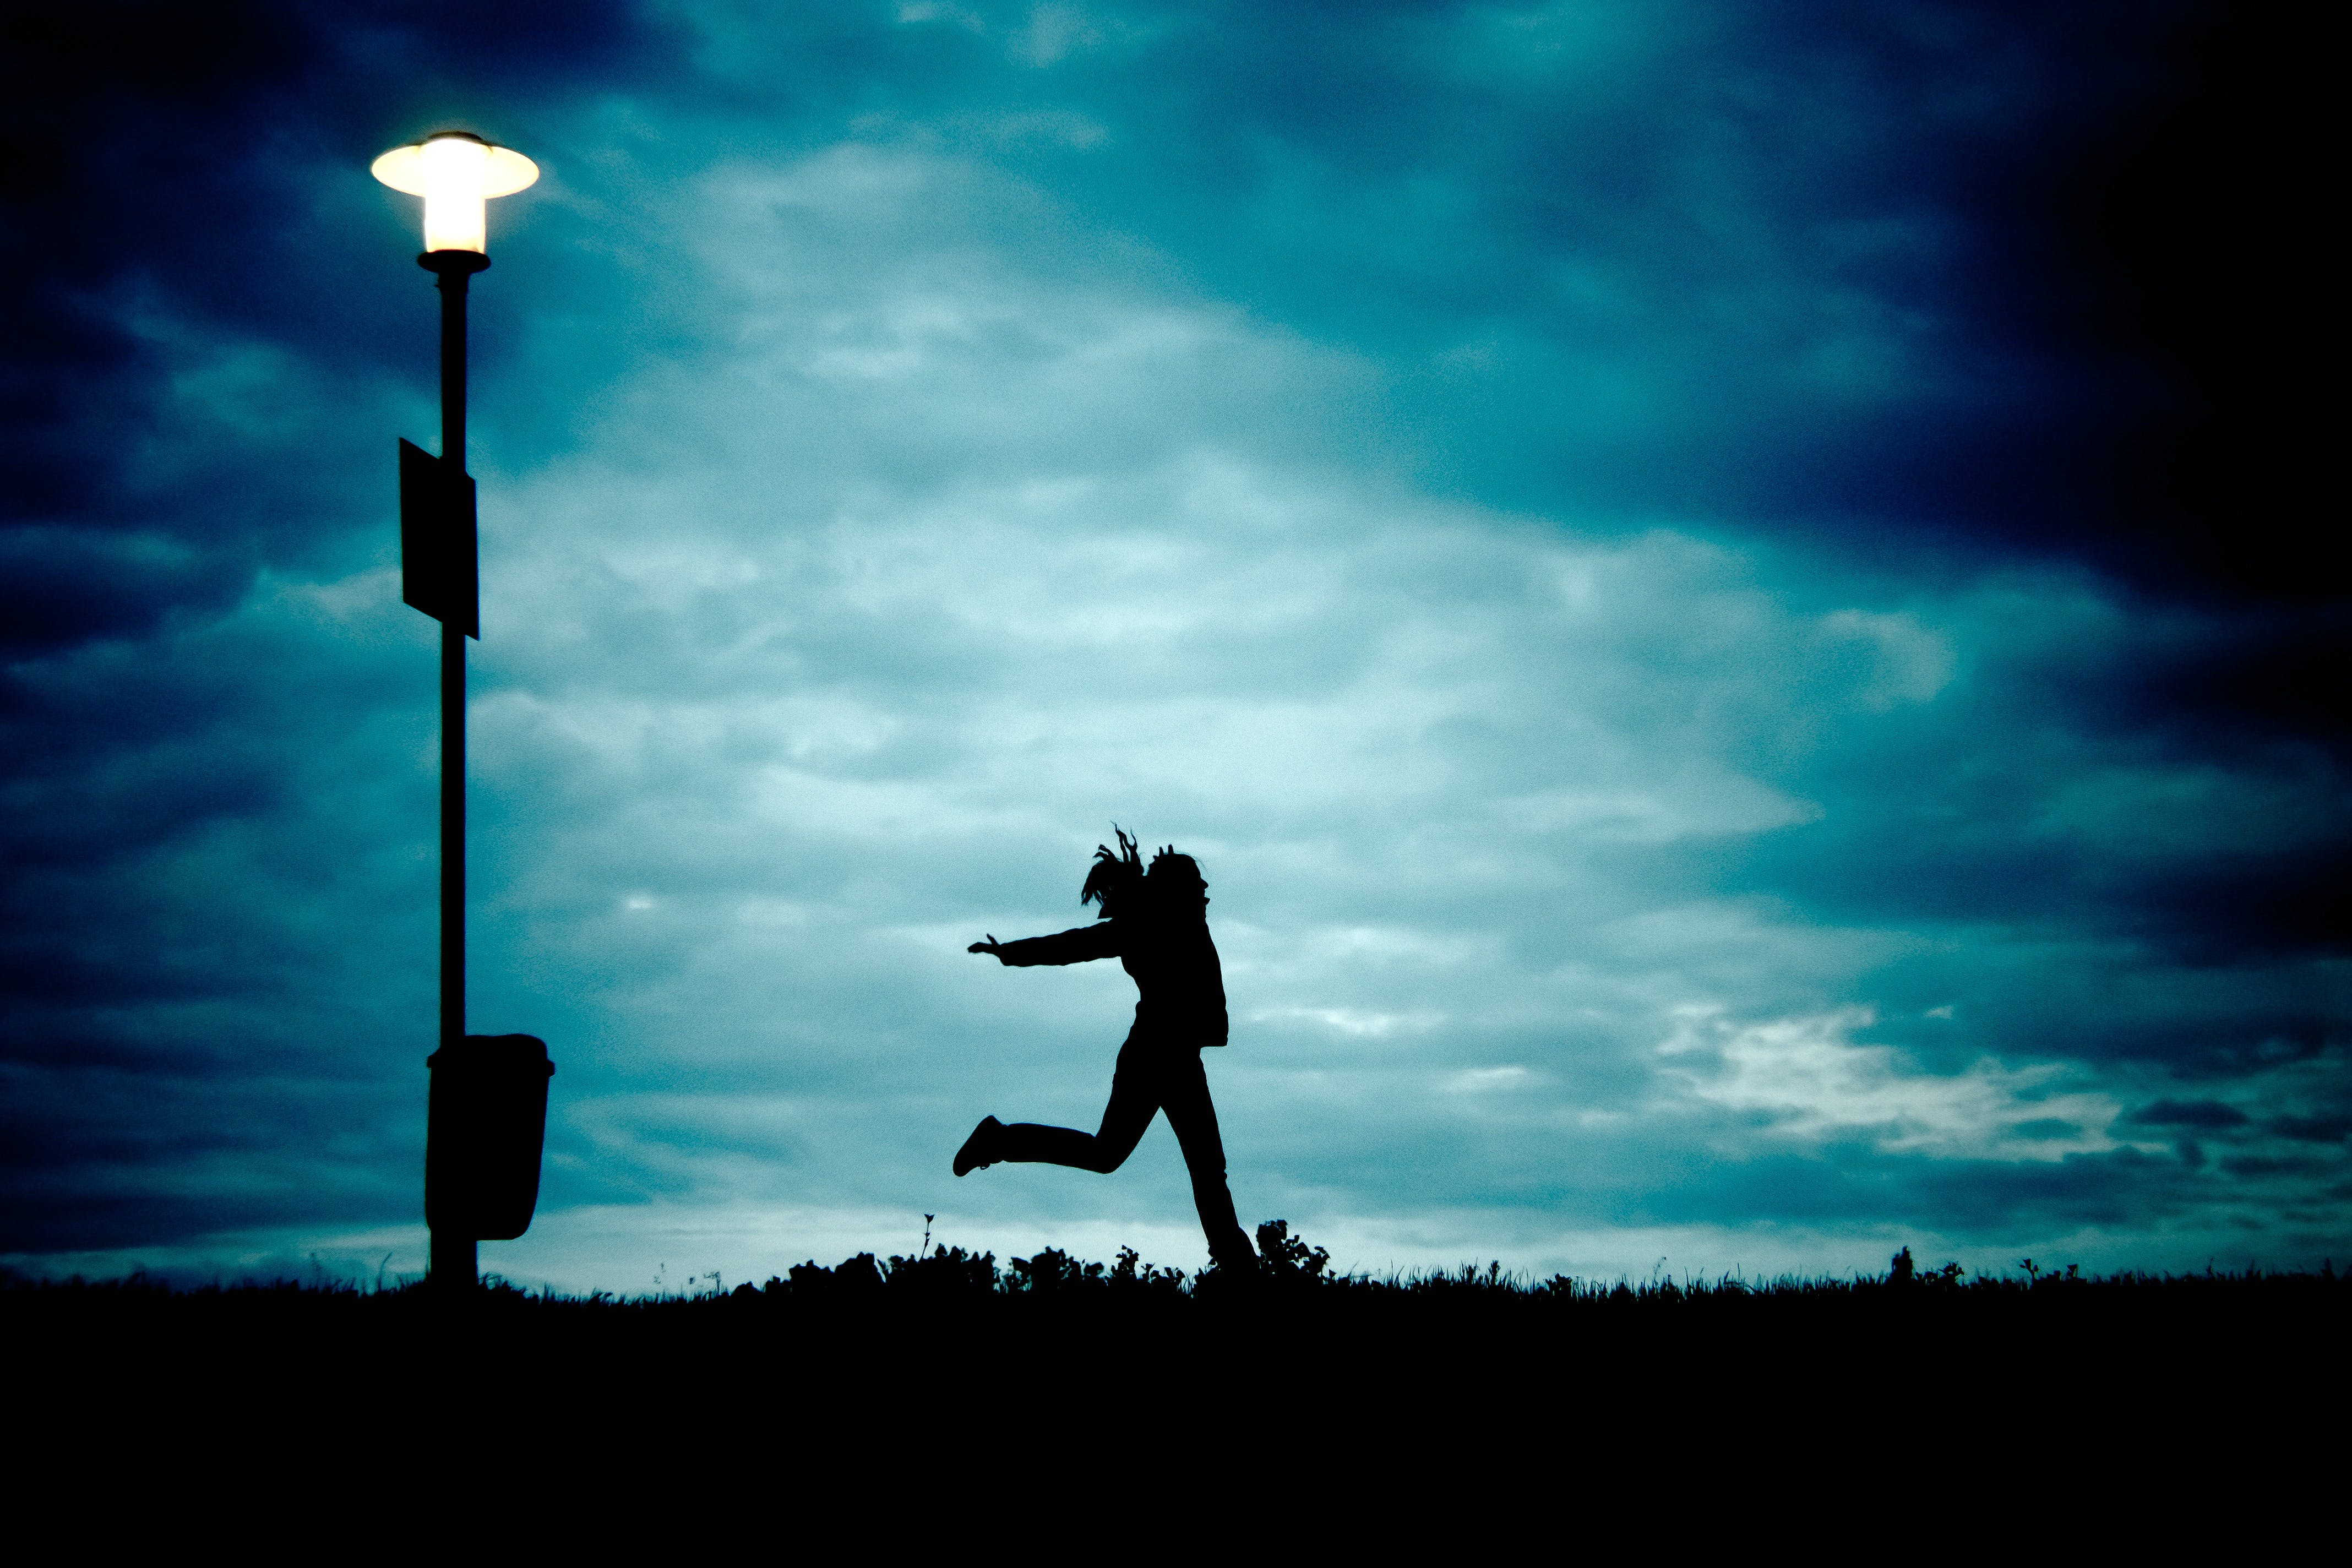 Silhouette of Person Beside Silhouette of Street Light